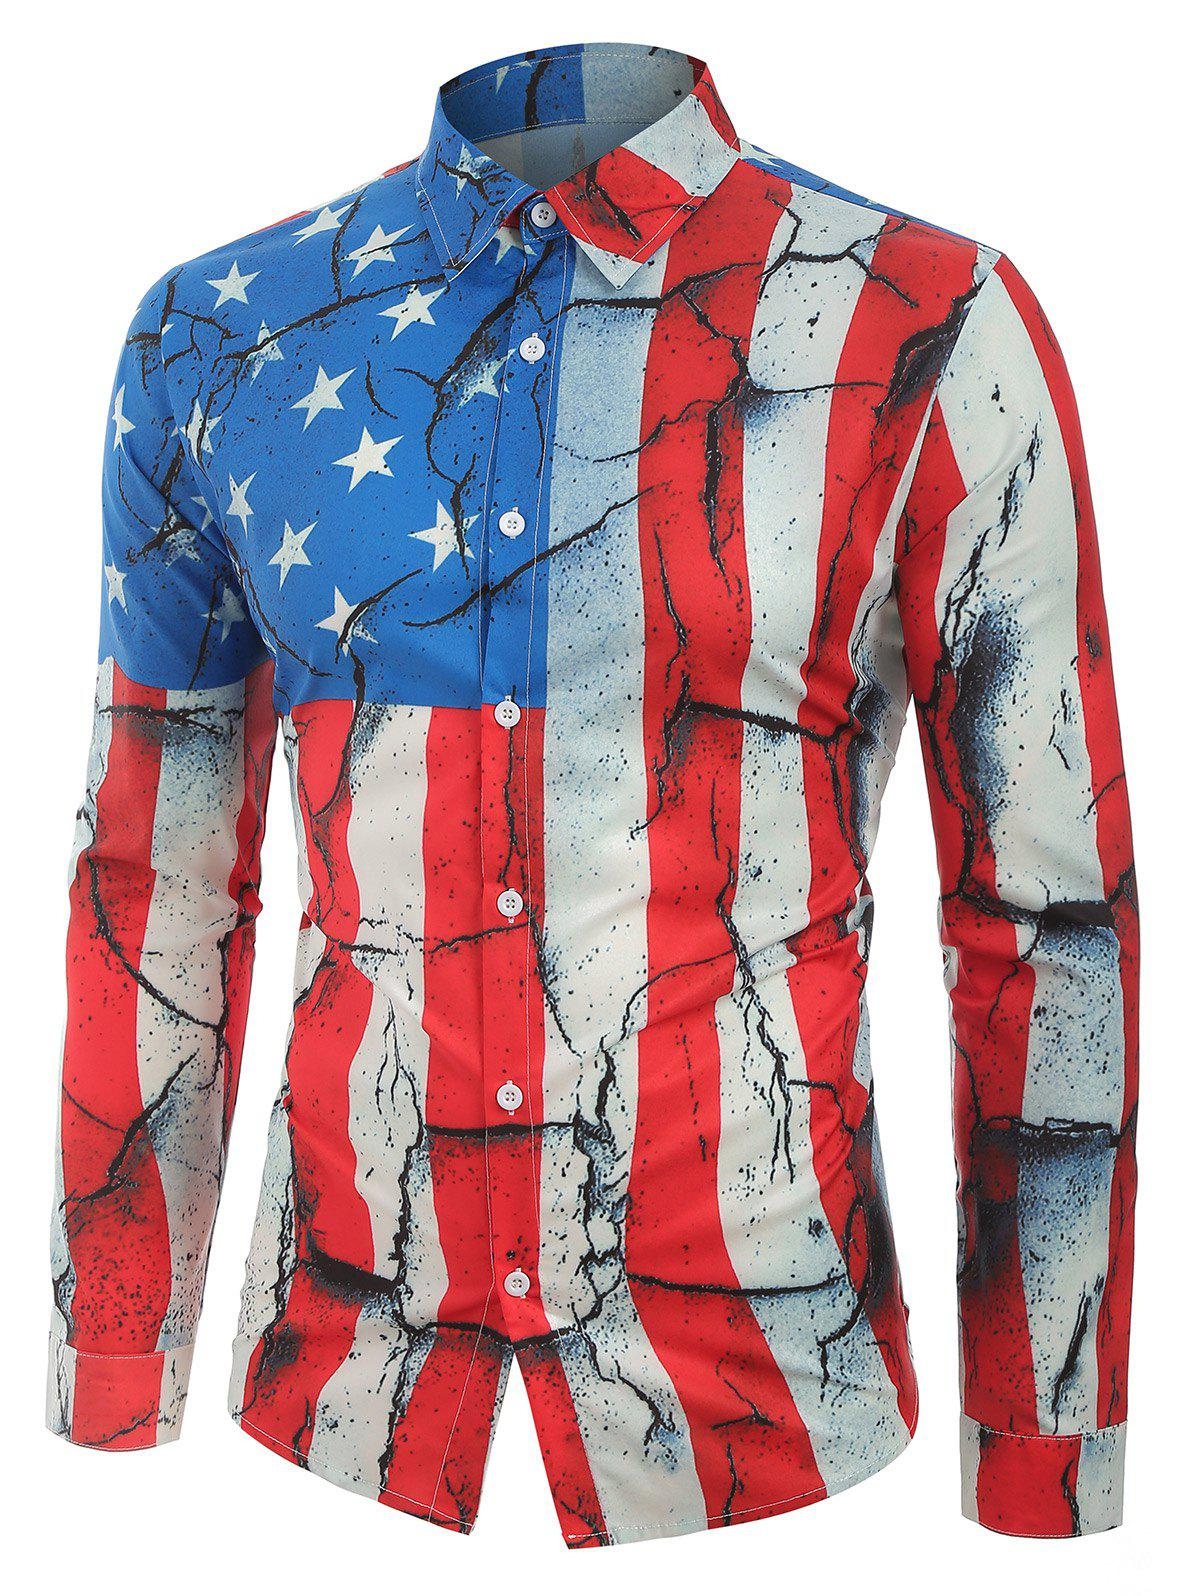 Fancy Cracked Patriotic American Flag Print Button Shirt